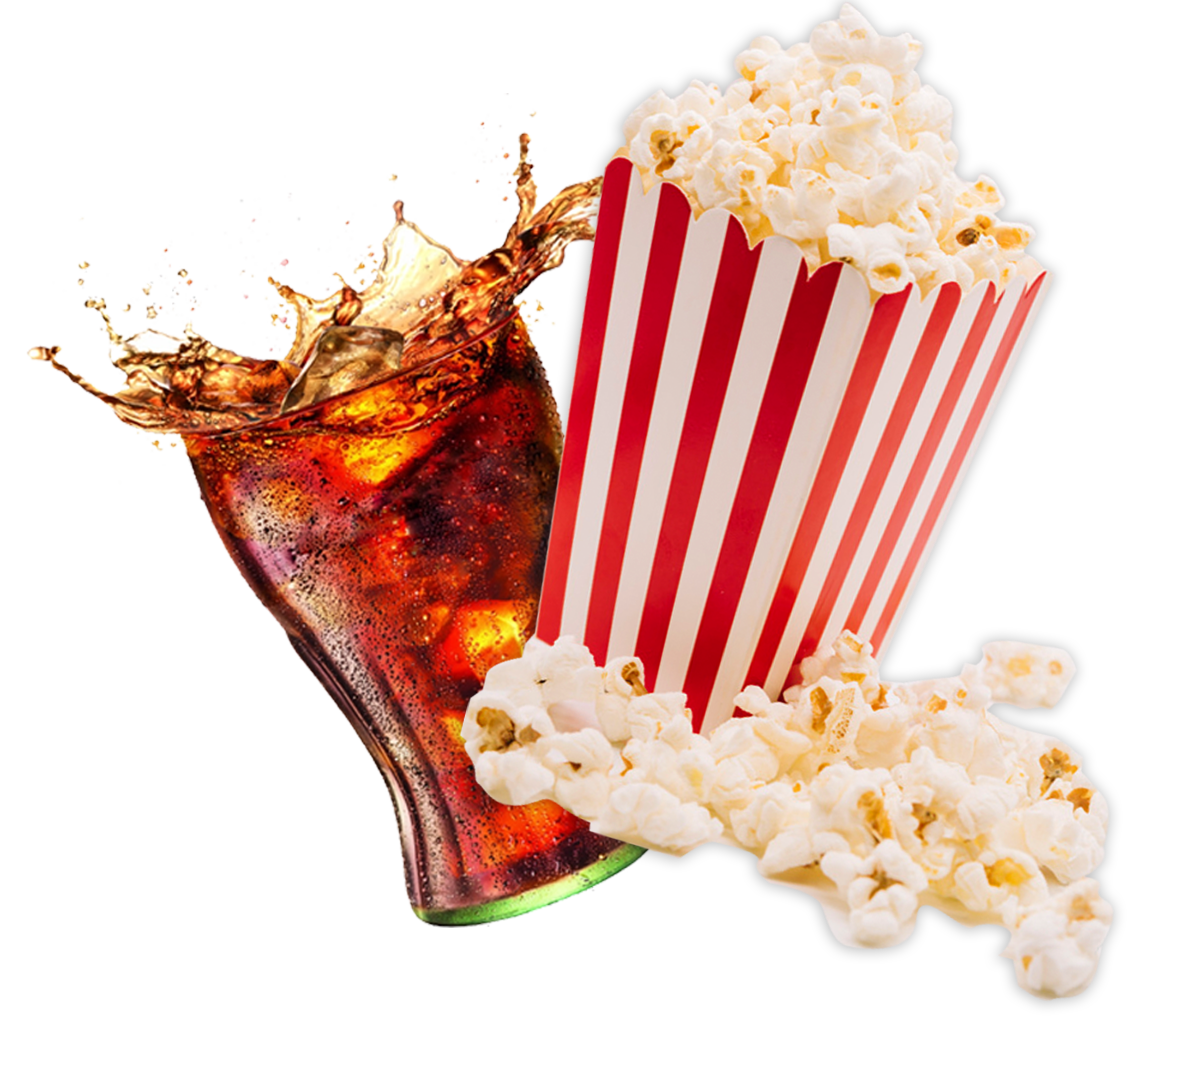 Popcorn and soft drink